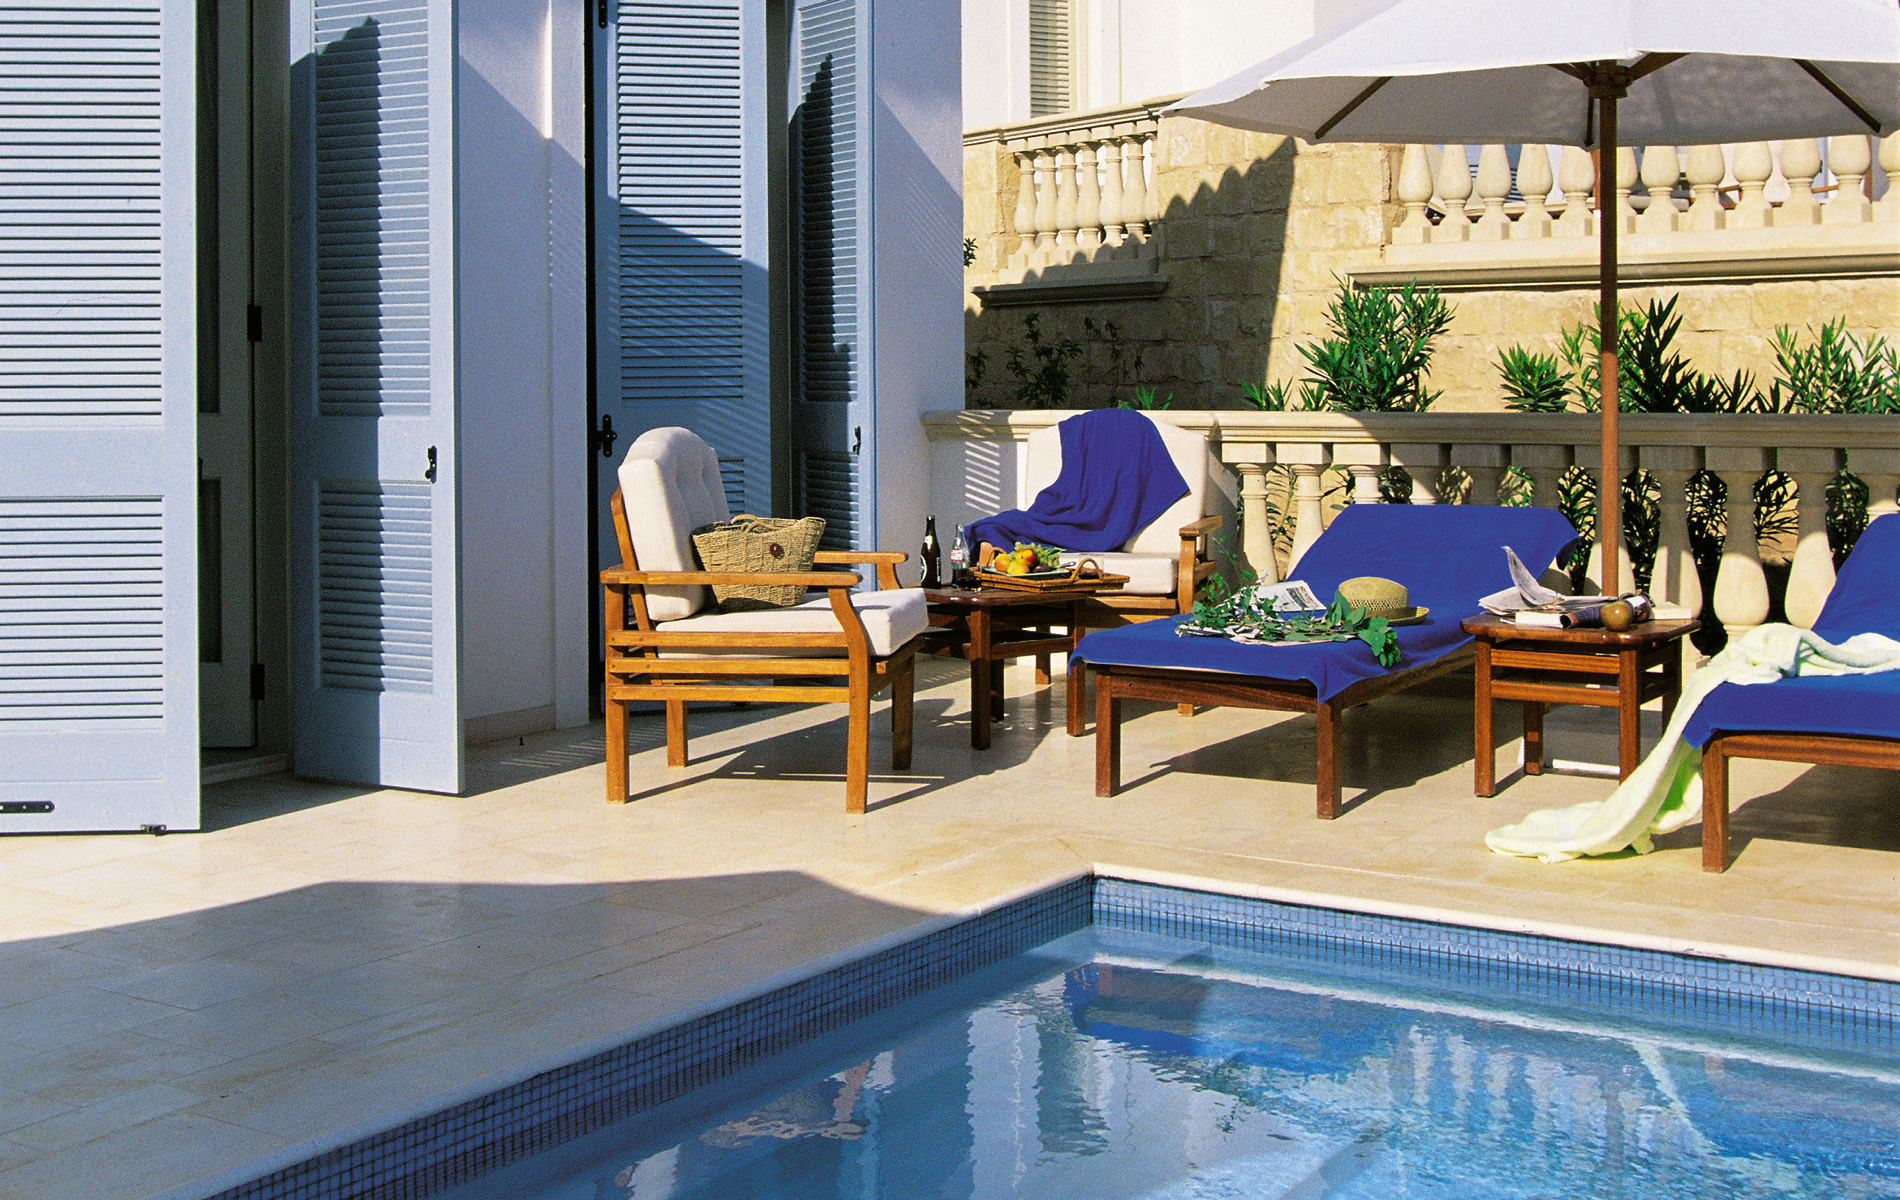 rooms-garden-studio-with-private-pool-2B